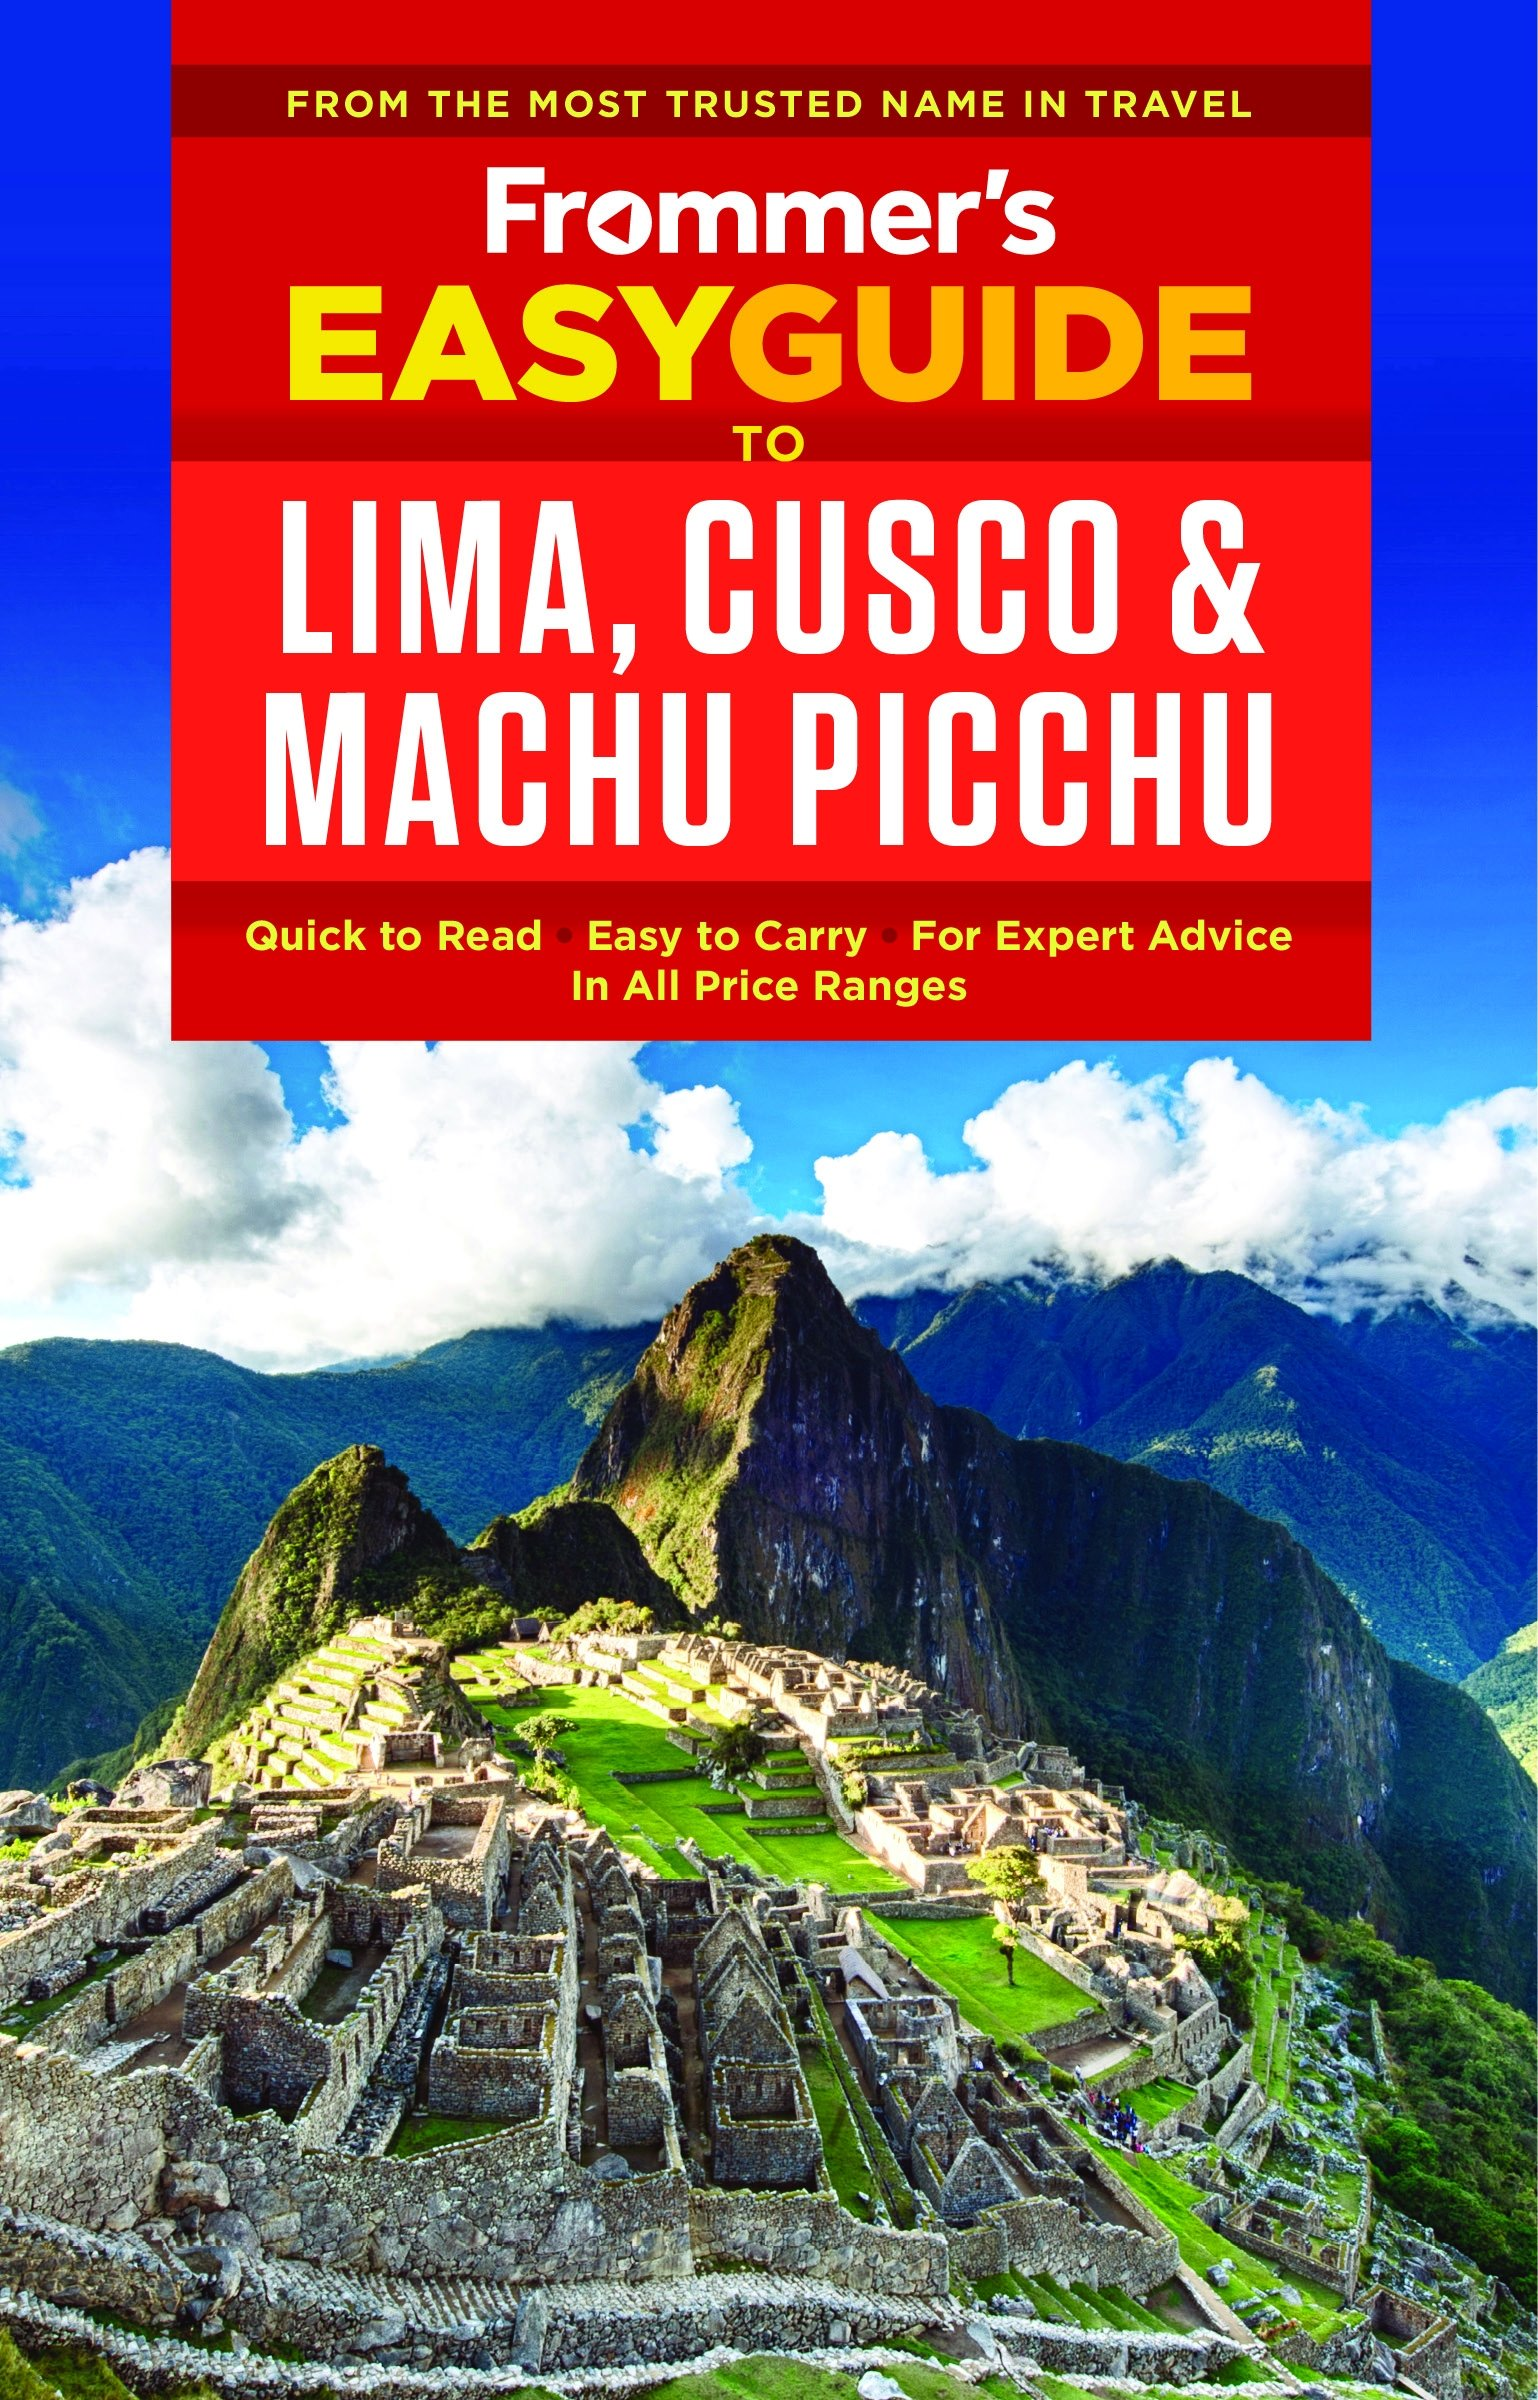 Frommer's EasyGuide to Lima, Cusco and Machu Picchu (Easy ... on map of new york, map of wadi rum, map of san pedro de atacama, map of jerusalem, map of cusco region, map of punta uva, map of galapagos islands, map of bru na boinne, map of argentina, map of taha'a, map of south america, map of inca empire, map of tikal, map of chichen itza, map of murchison falls national park, map of cuzco, map of asunción, map of inca society, map of tenochtitlan, map of peru,